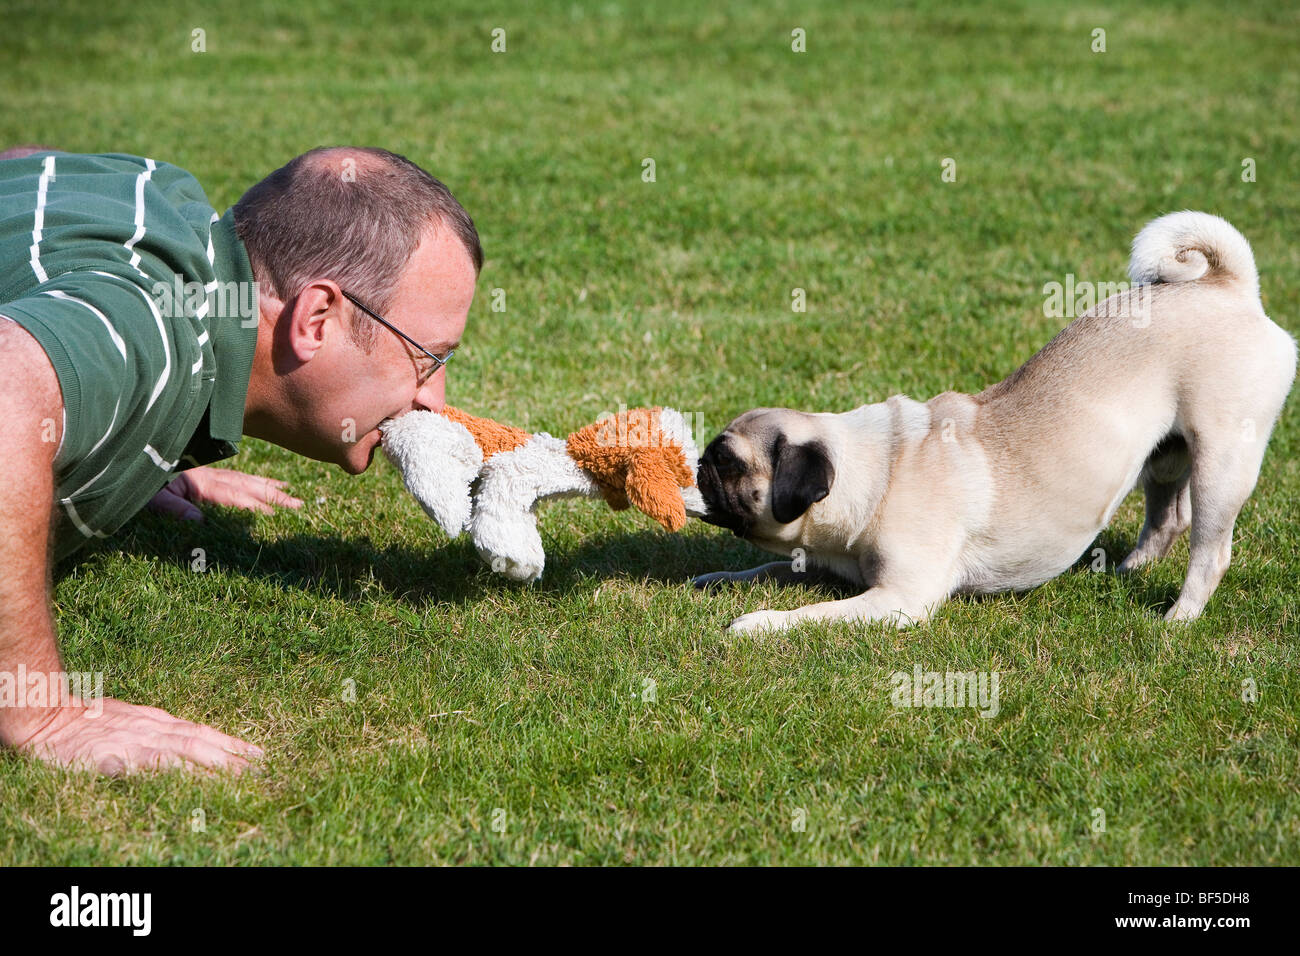 A young male pug and his owner playing happily in a meadow with a plush toy - Stock Image